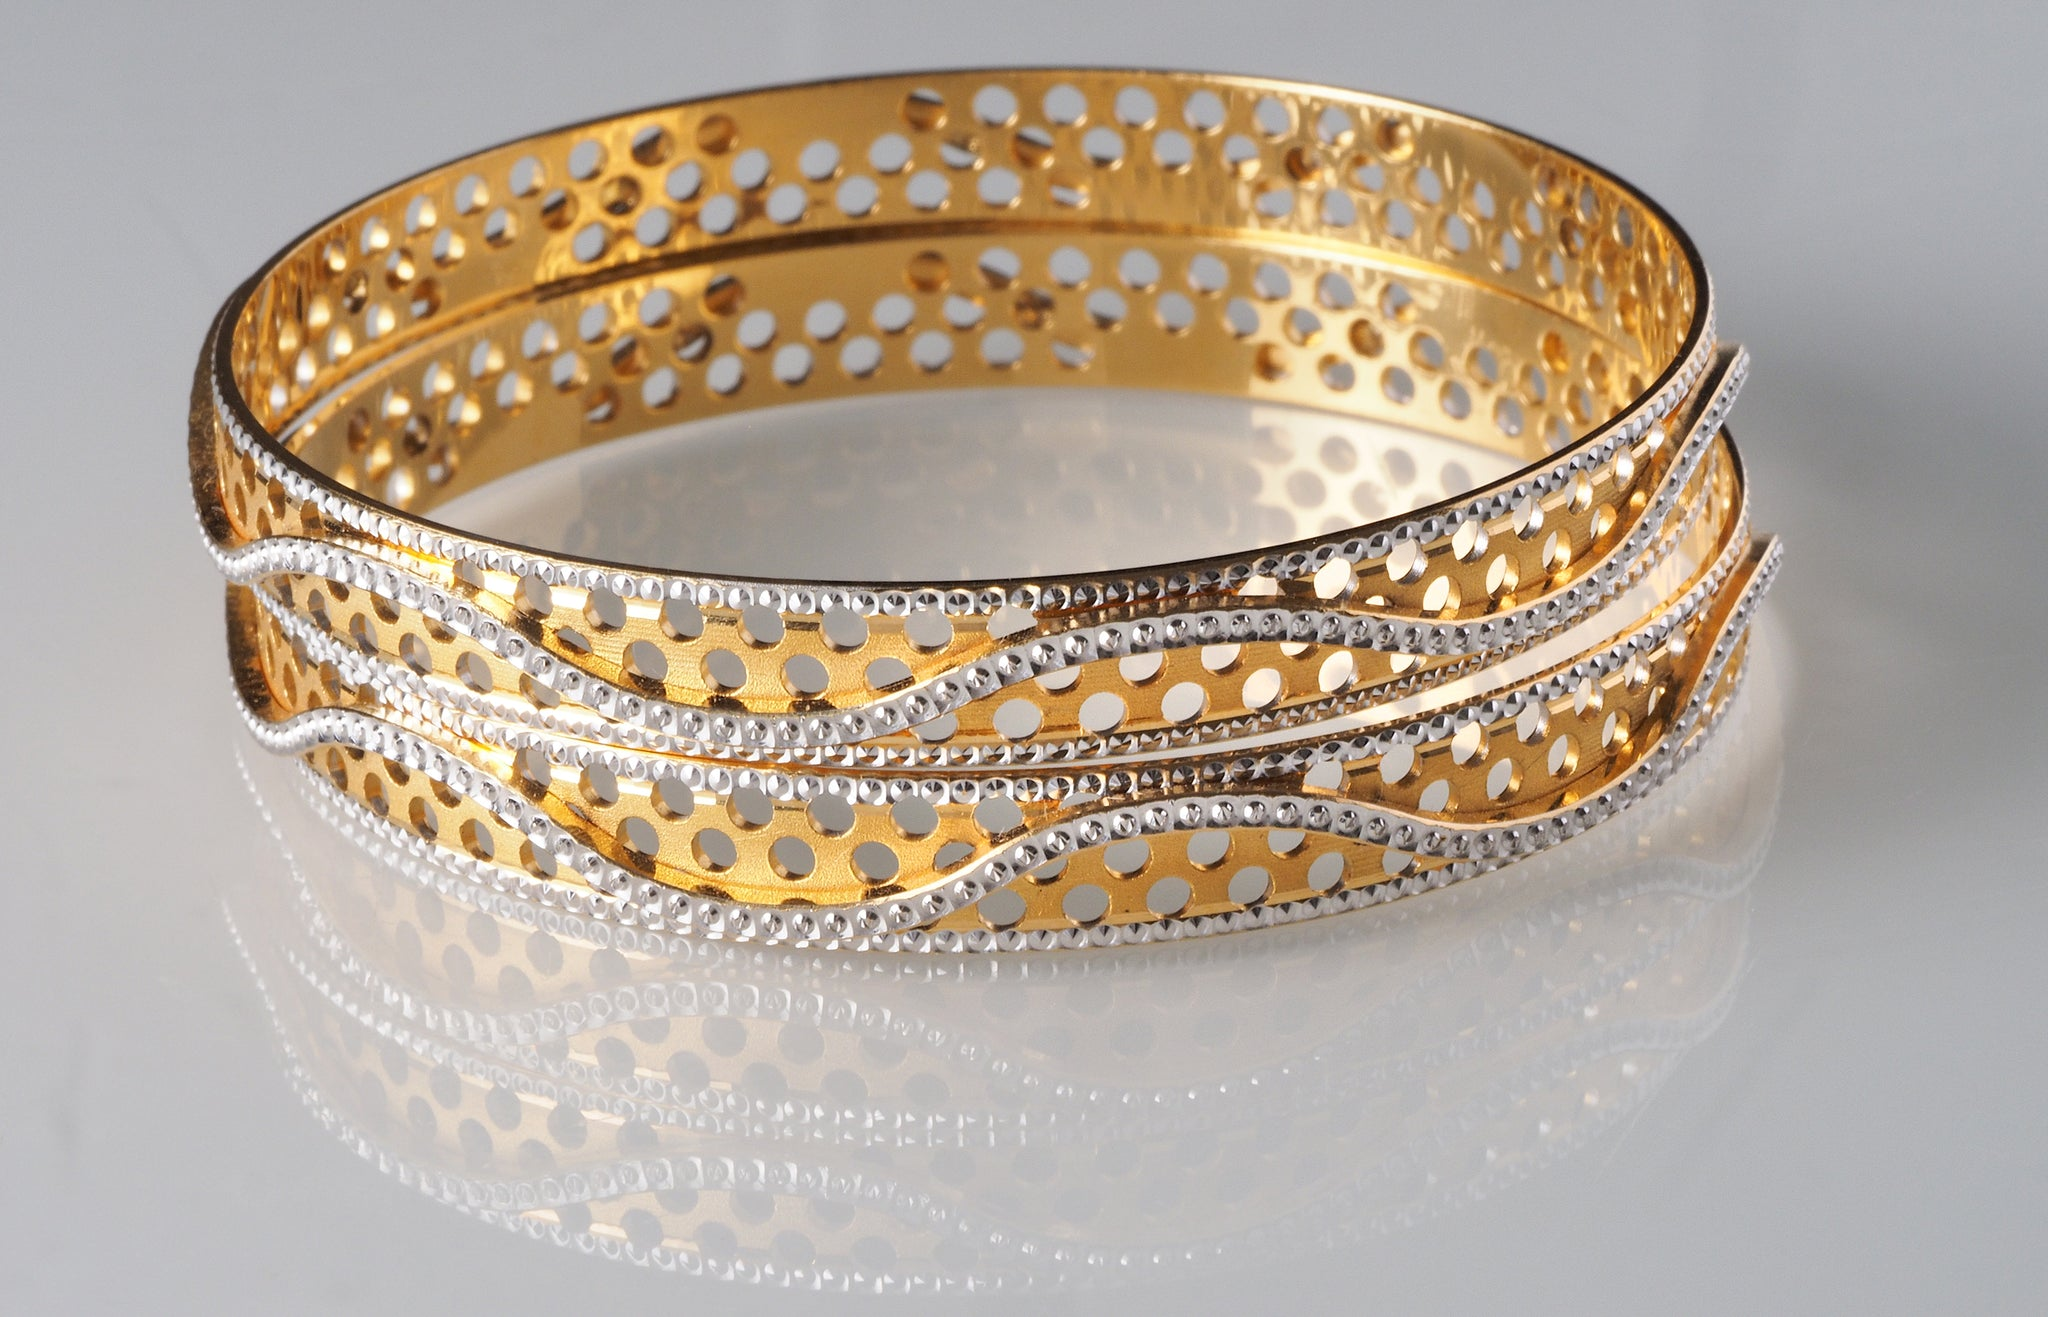 22ct Gold and Rhodium Plated Bangles with diamond milled design B-5902